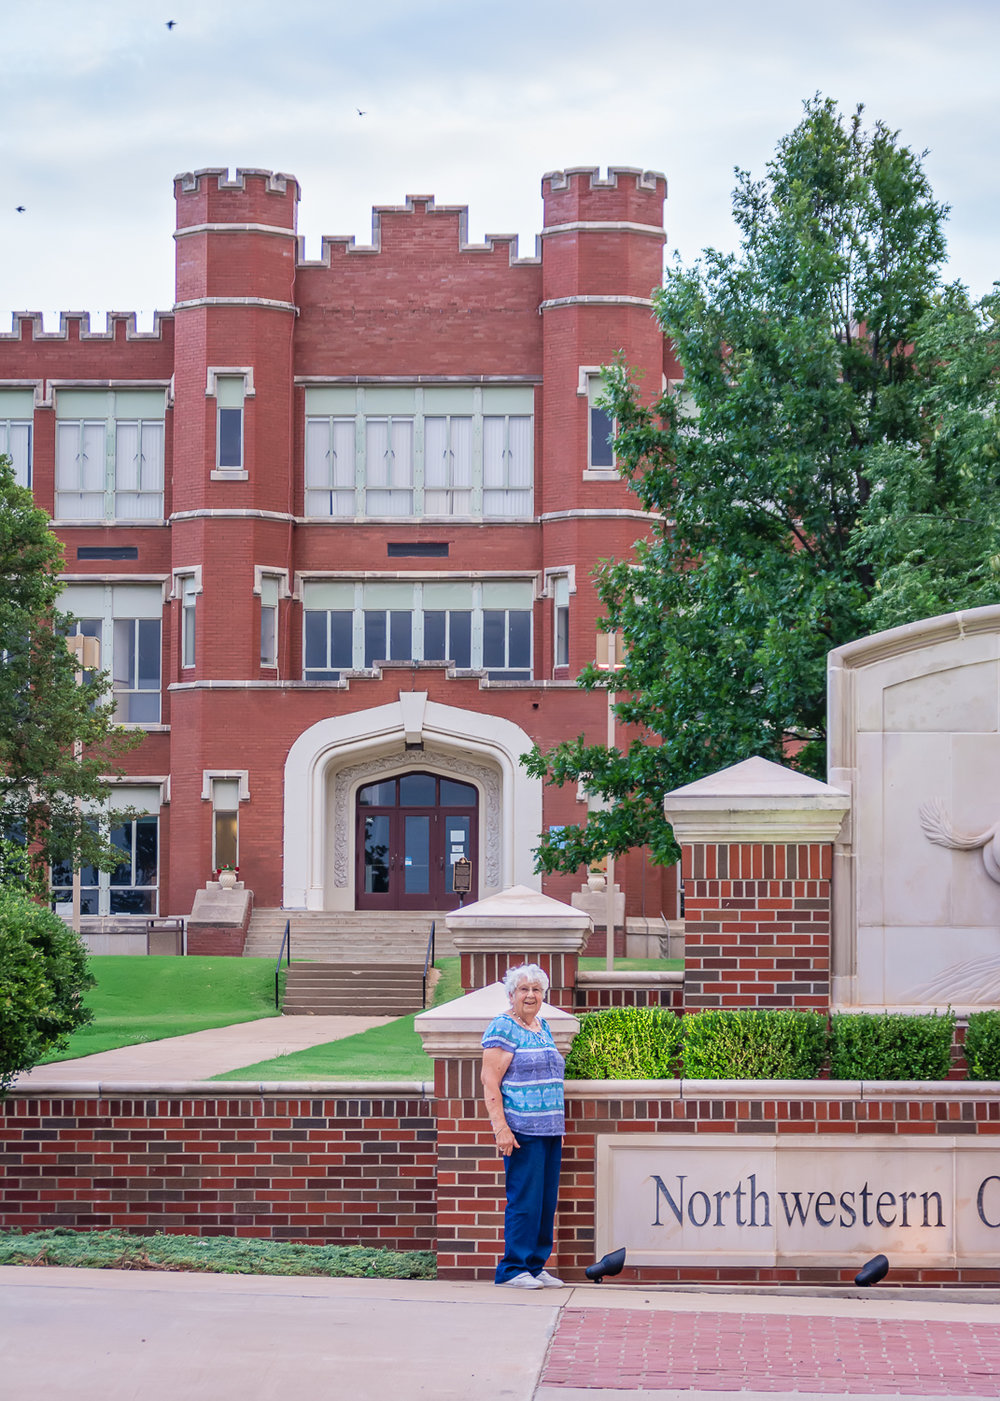 Northwestern Oklahoma State University, College Campus, Red Brick Building, Historical Building, Alva, Oklahoma, LDS Wedding Photographer, LDS Destination Photographer, Albuquerque Wedding Photographer